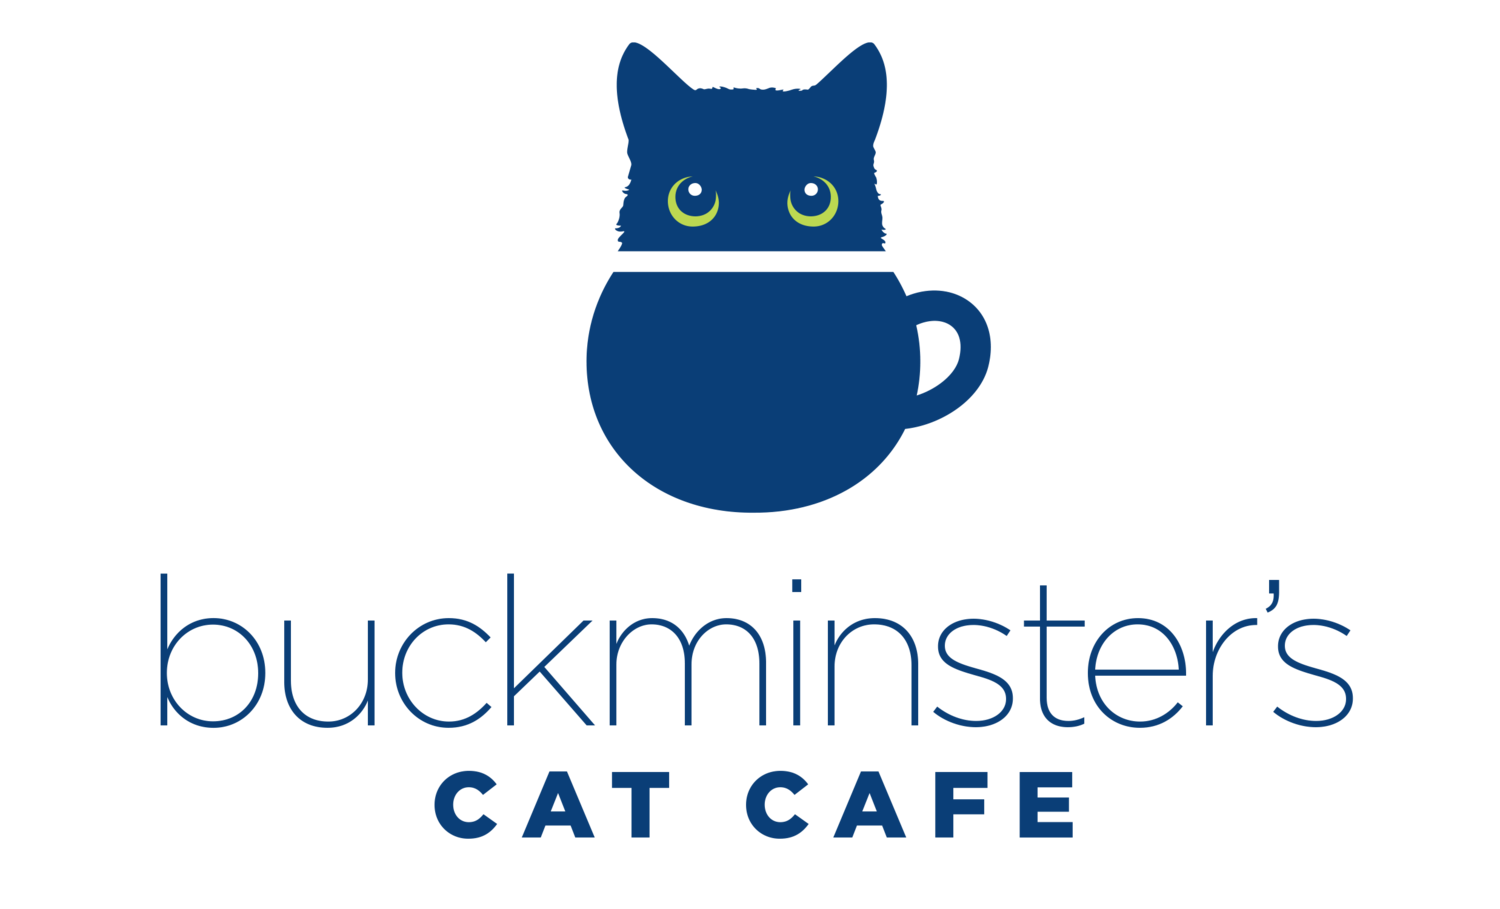 Buckminster's Cat Cafe